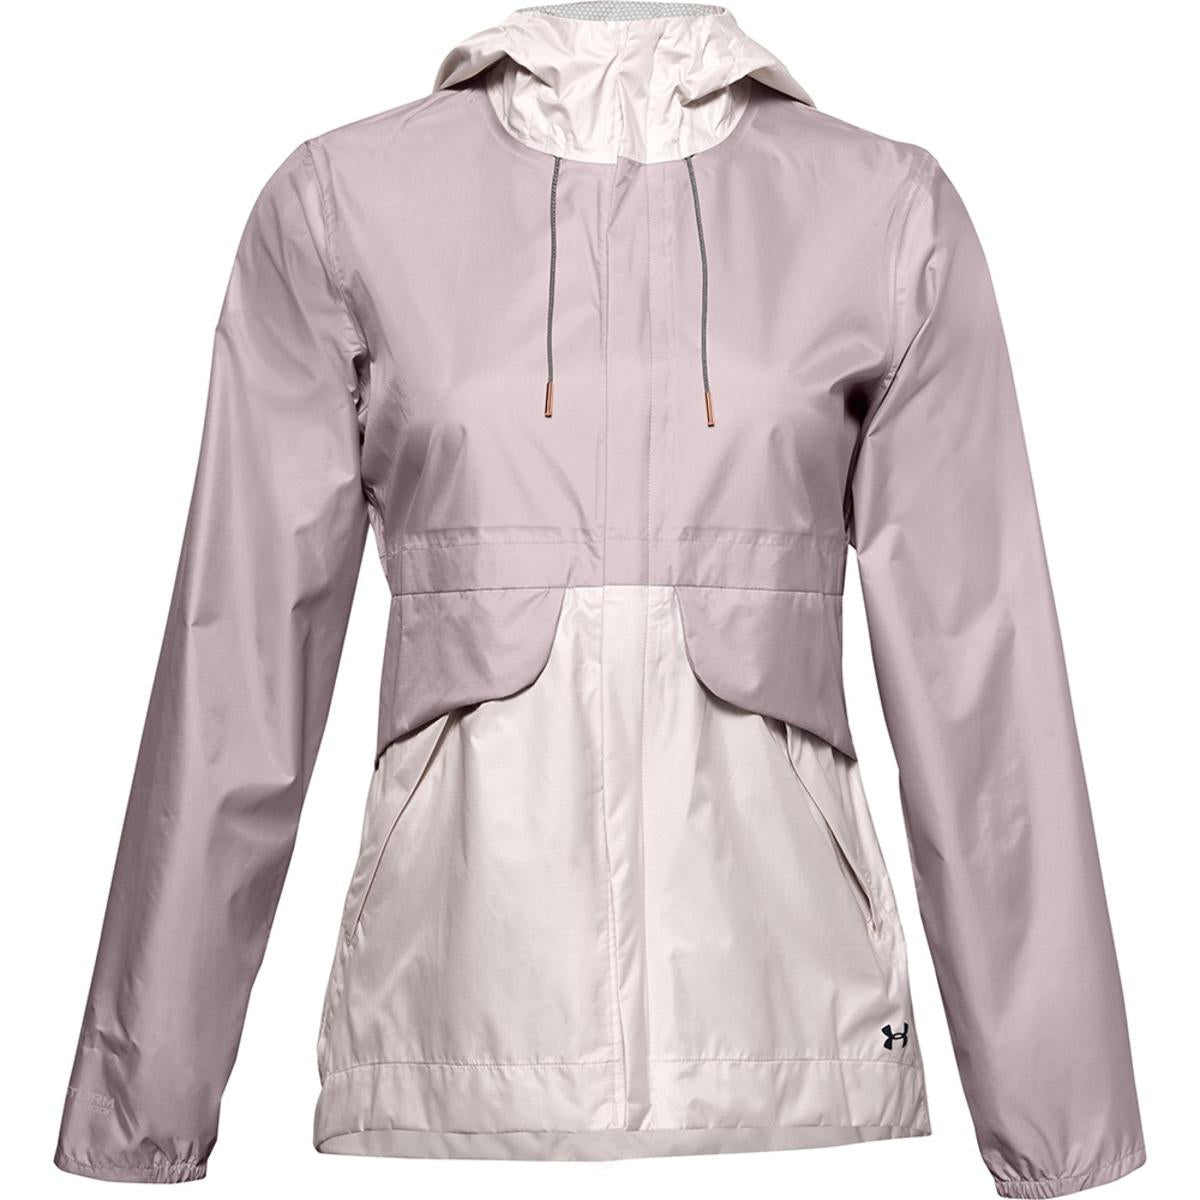 Under Armour Women's Cloudstrike Shell Jacket